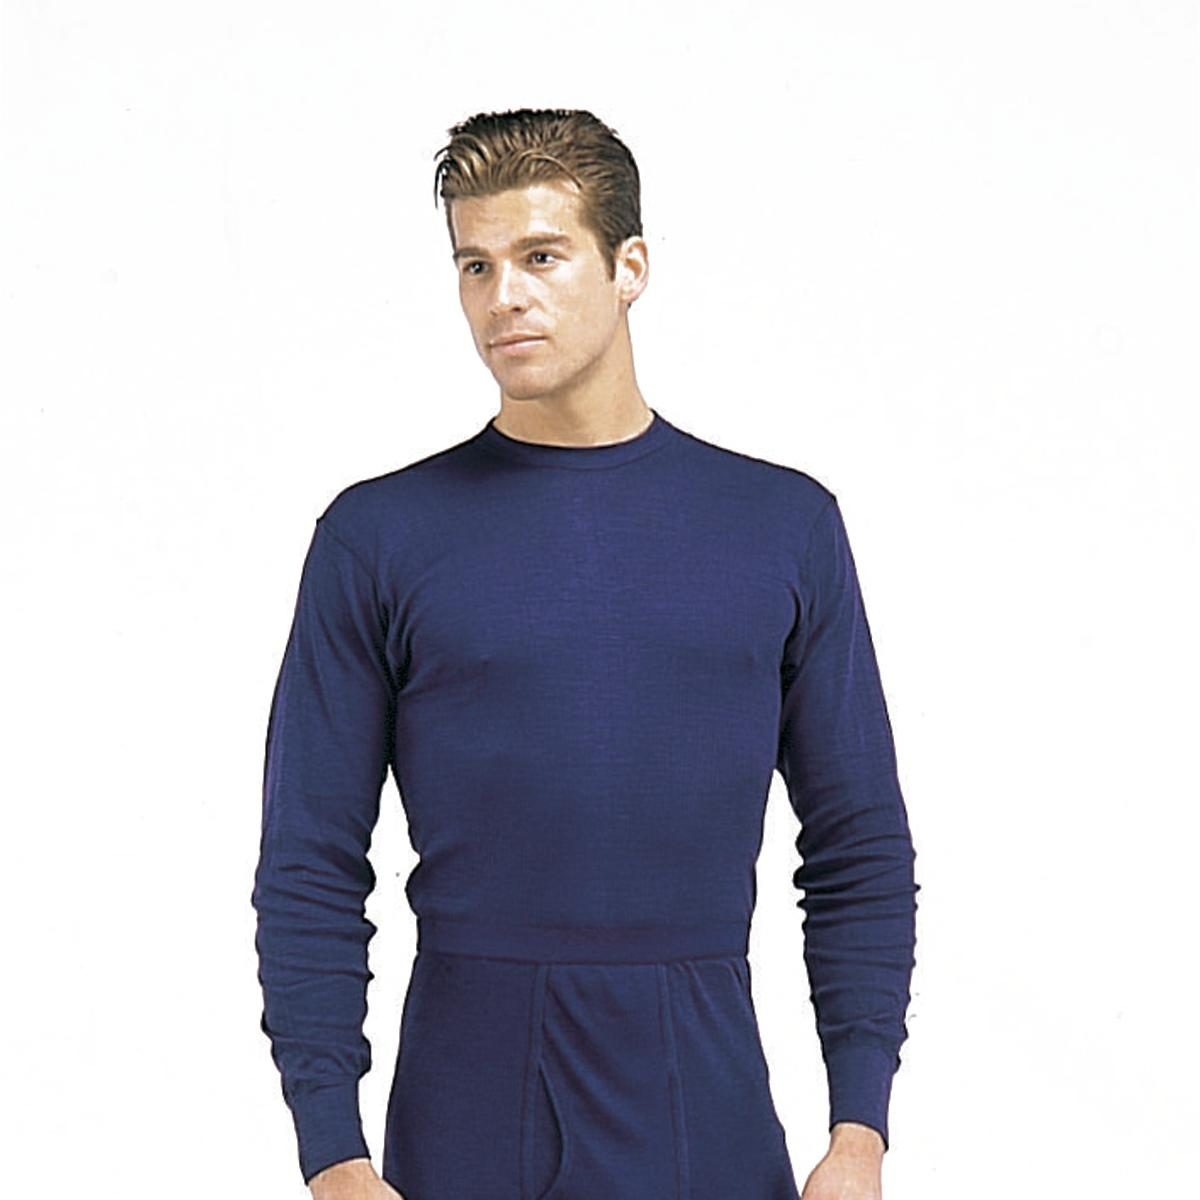 Indera Blue Polypropylene Thermal Long Underwear Tops, Shirts ...